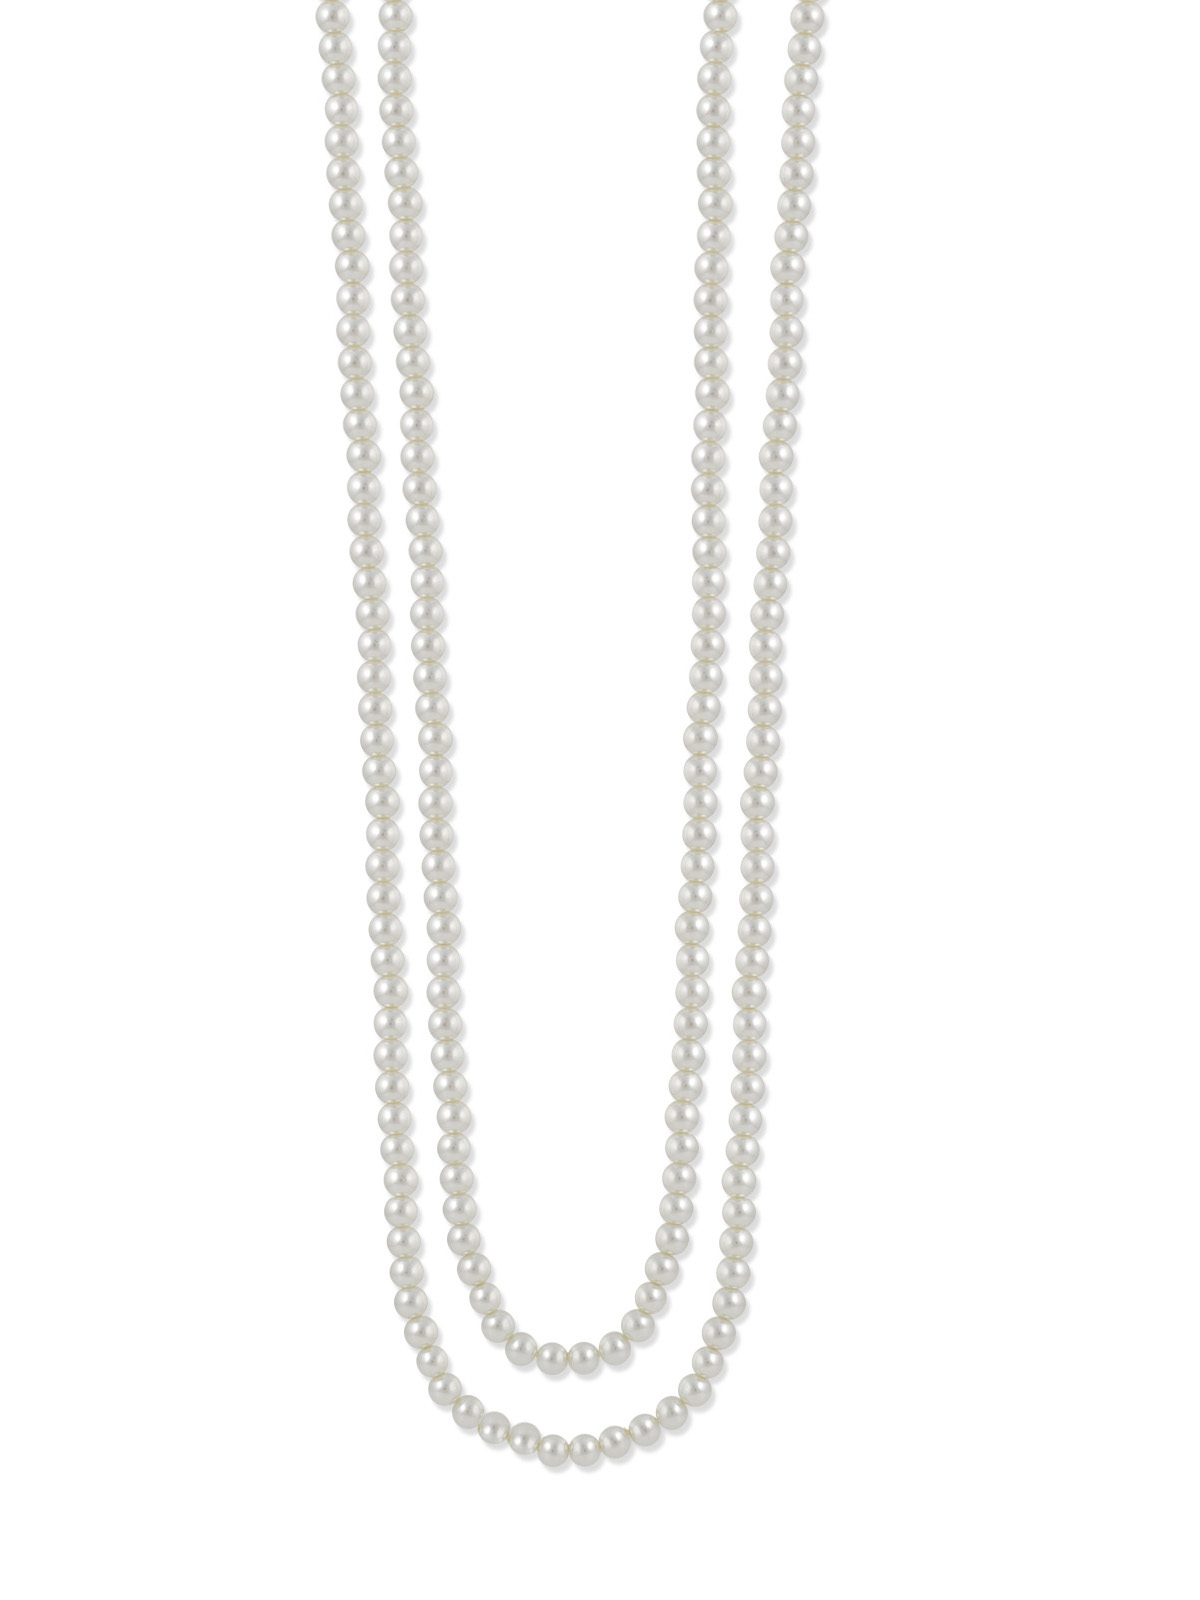 TAZZA WOMEN'S 8MM WHITE FAUX PEARL LONG NECKLACE #N114110673